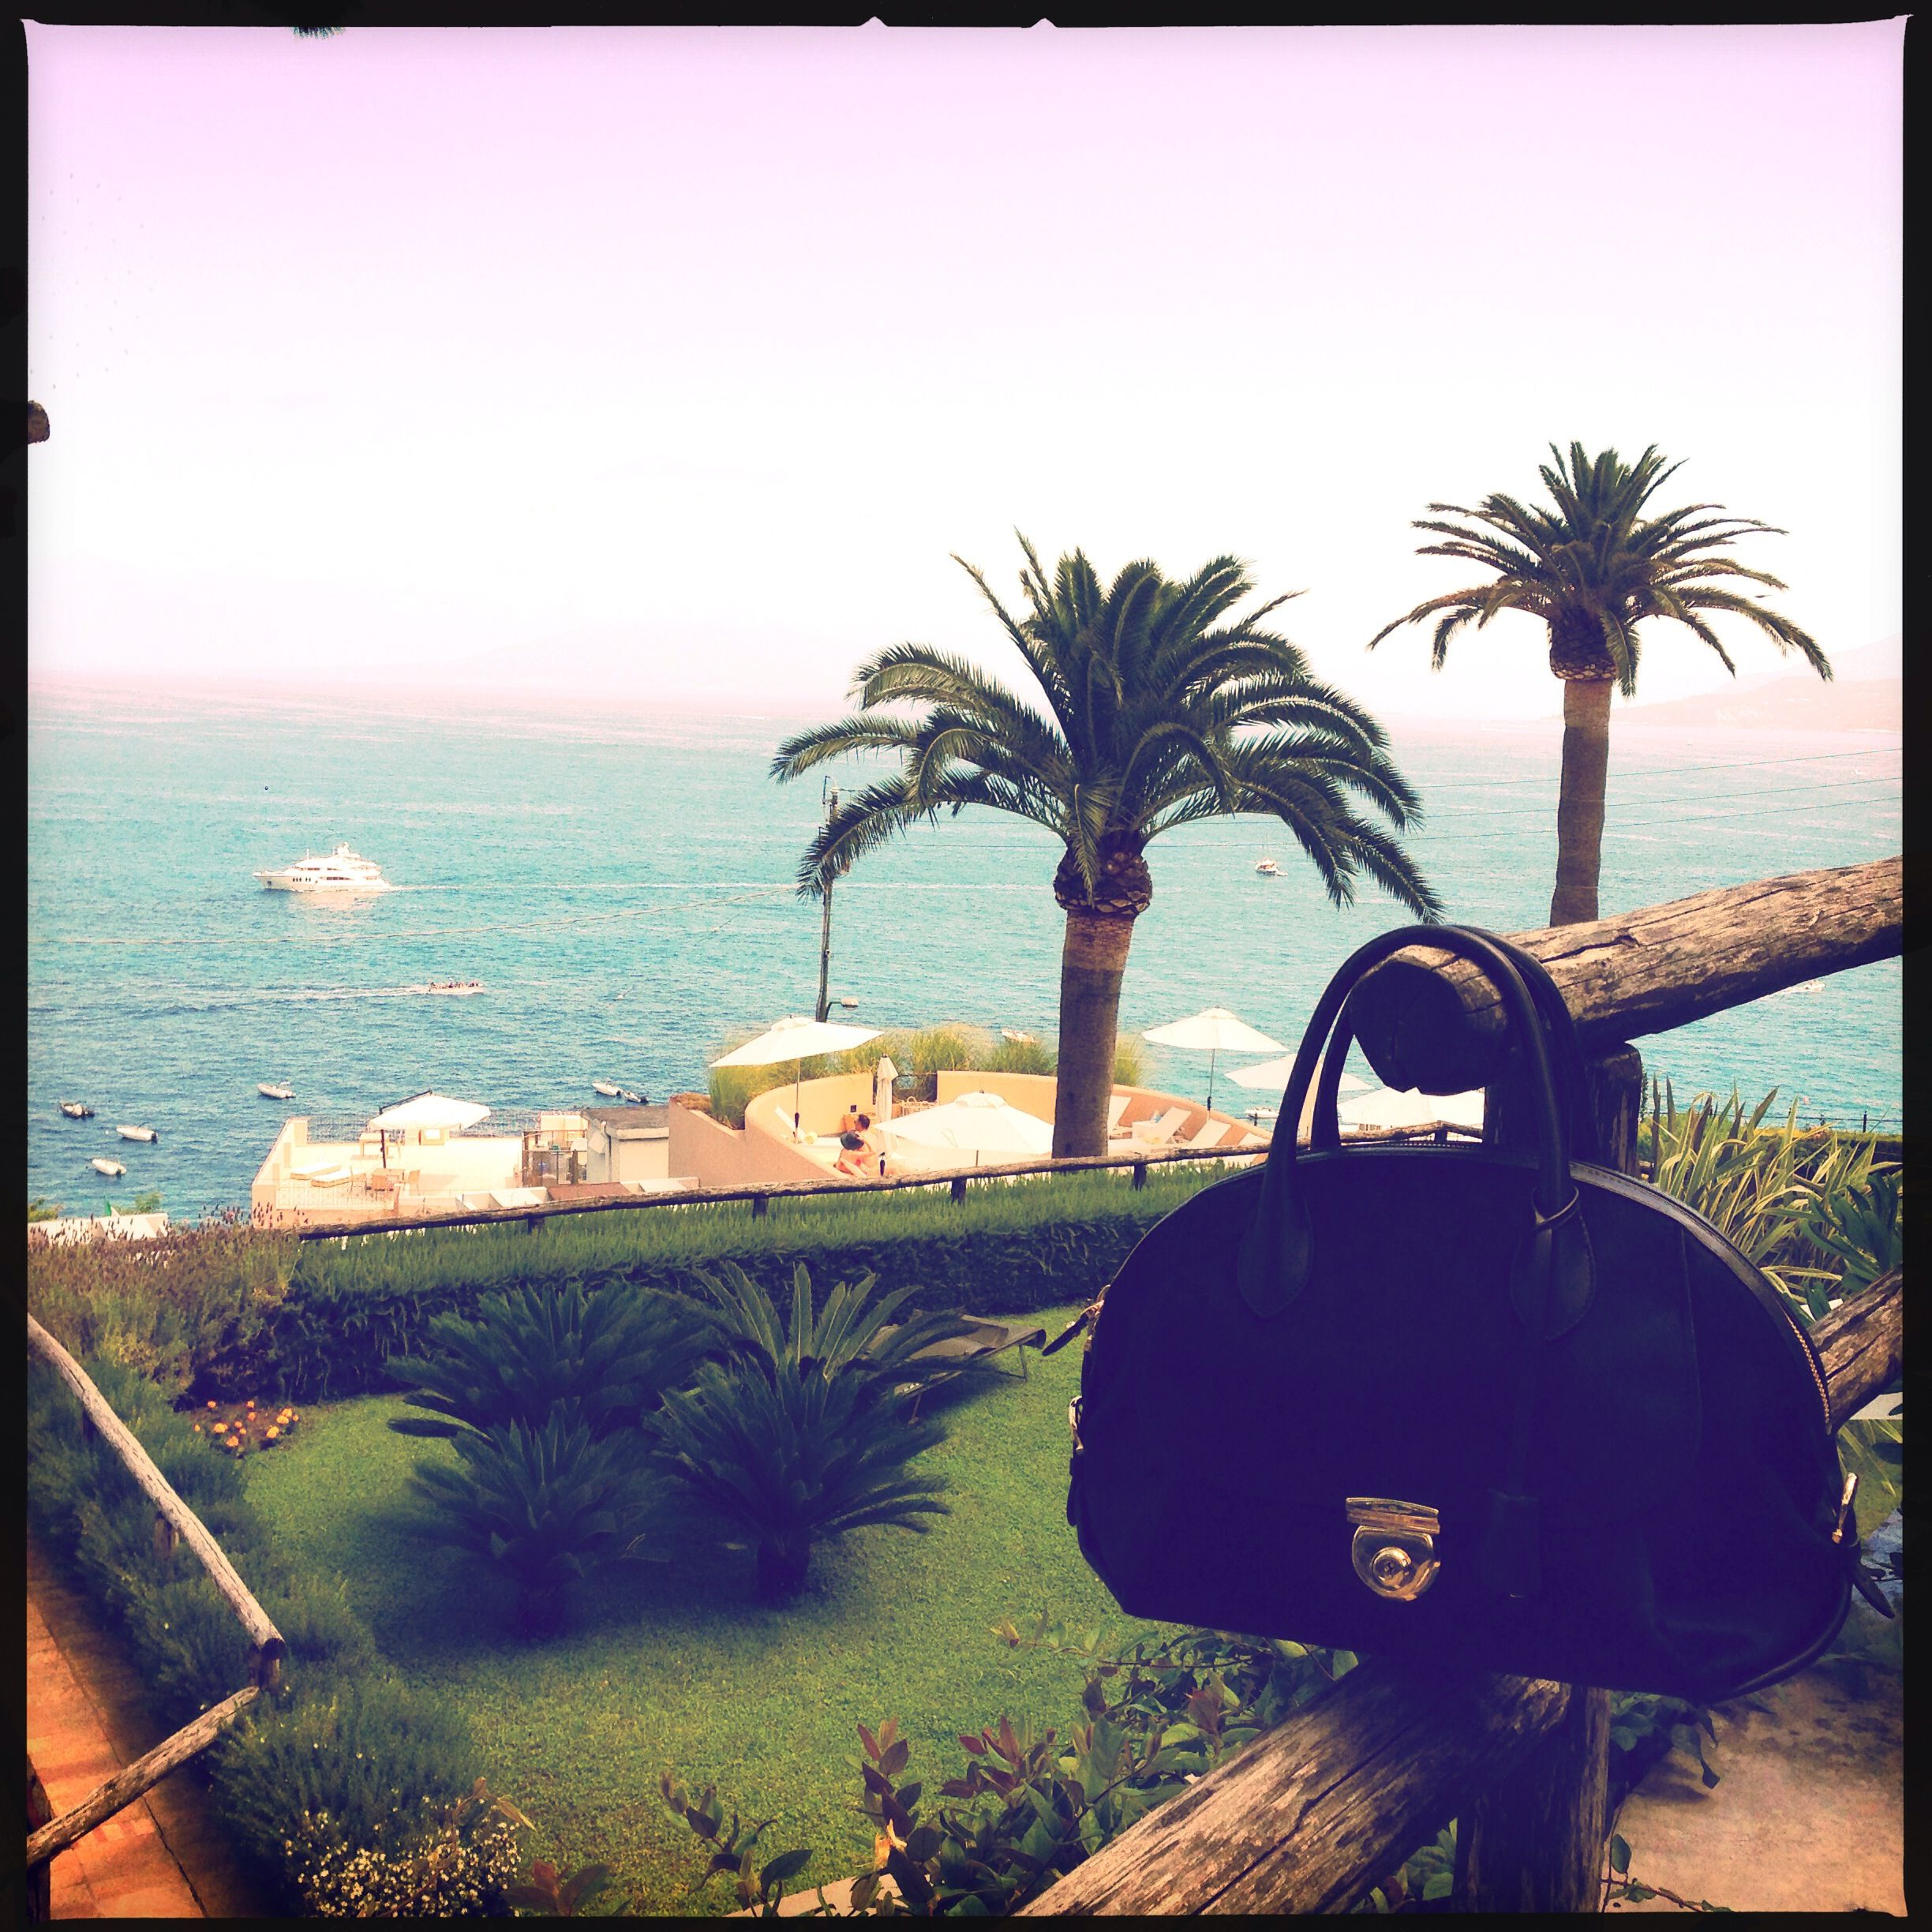 #theFiamma #SummerHoliday with Nausheen Shah in the French Riviera. Shop the Fiamma handbag at www.ferragamo.com